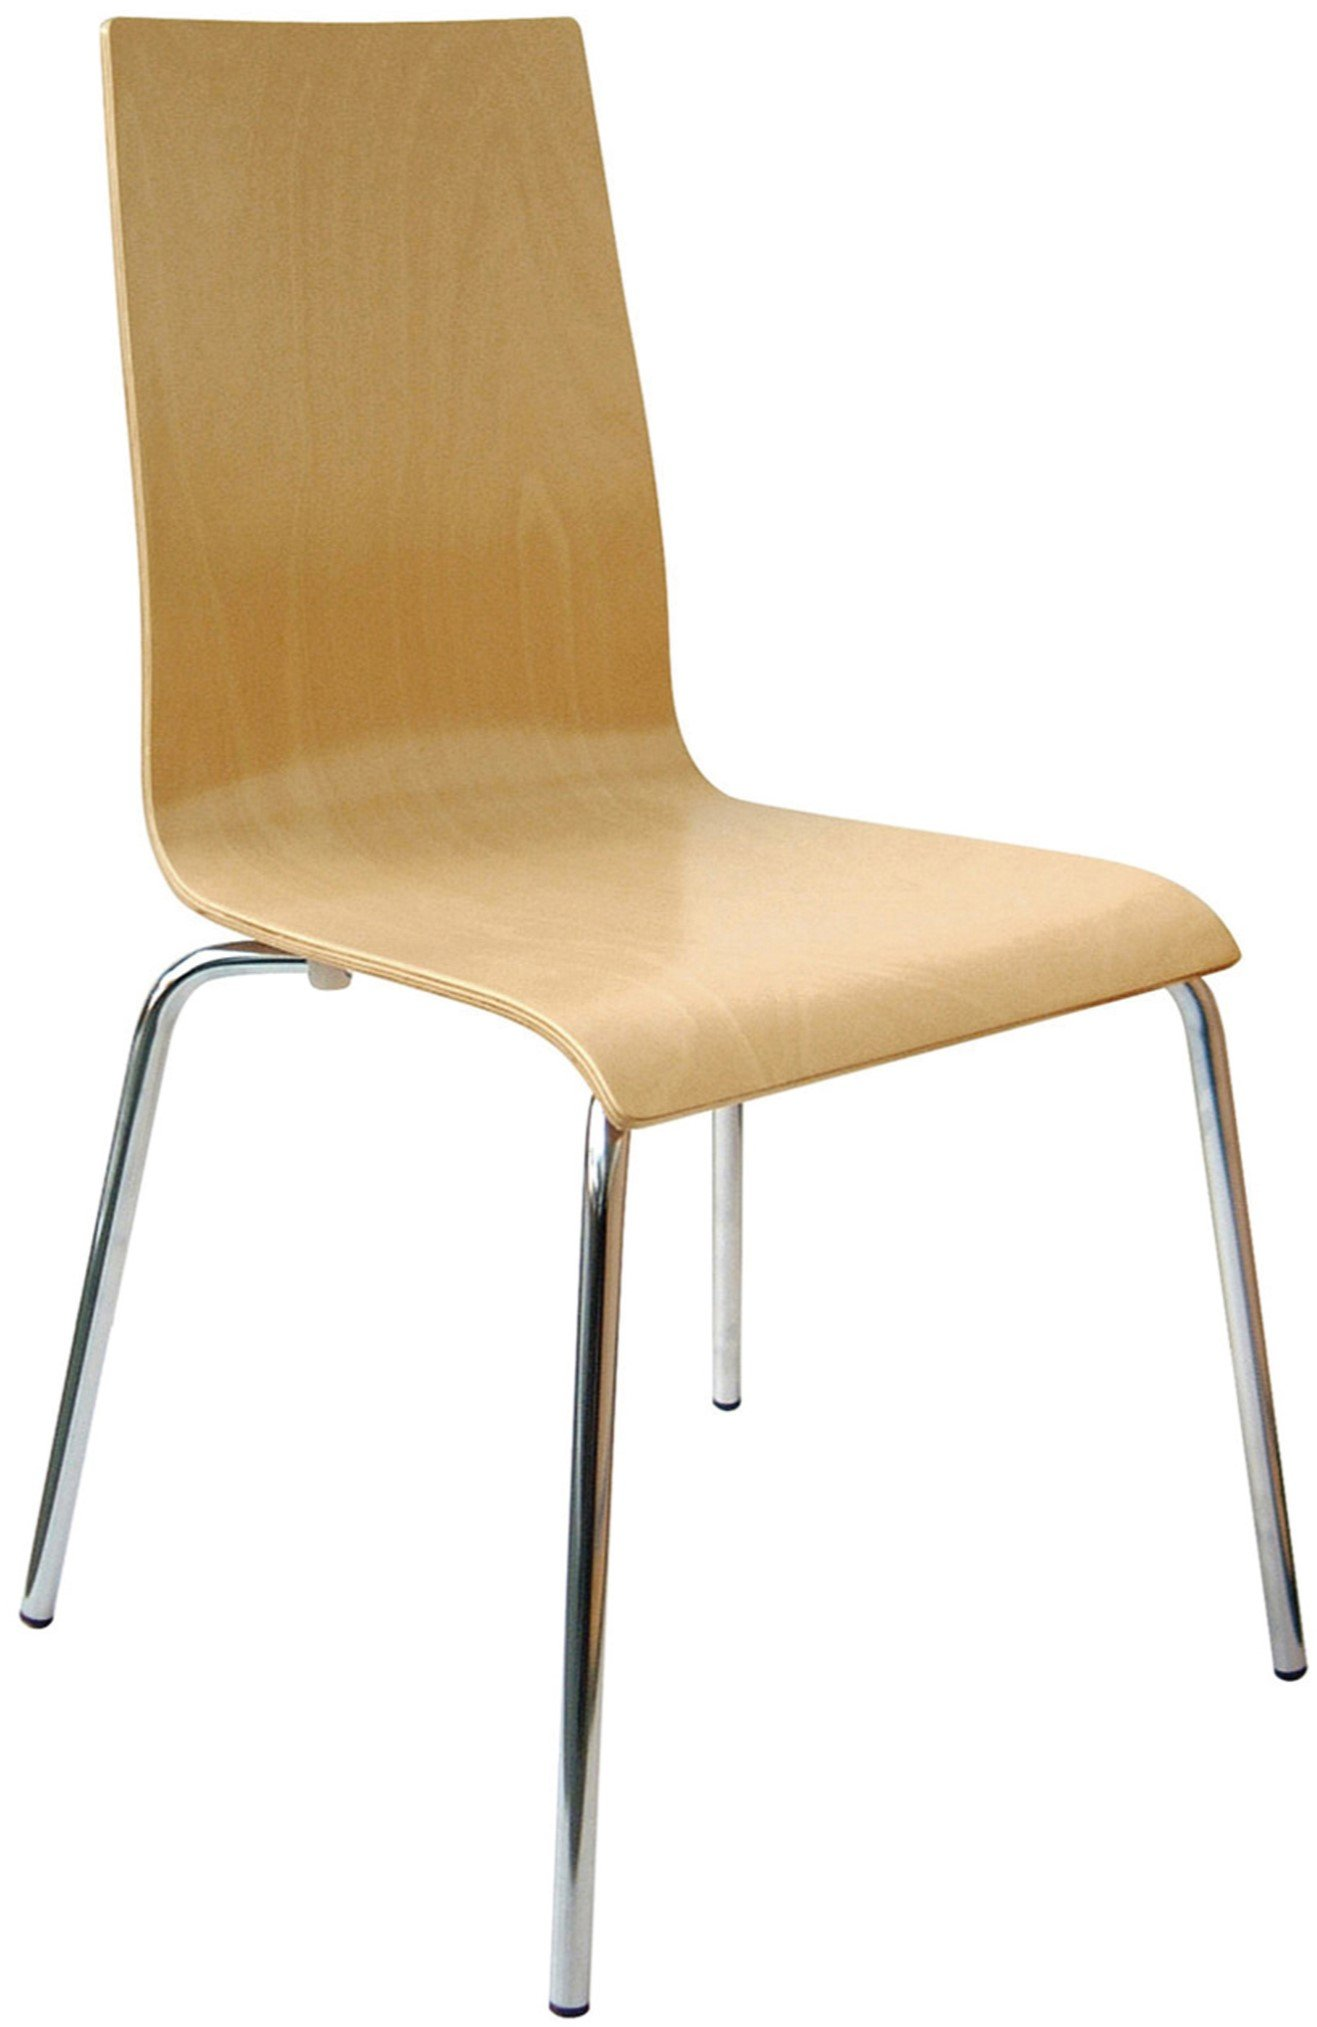 Fundamental Stacking Chair